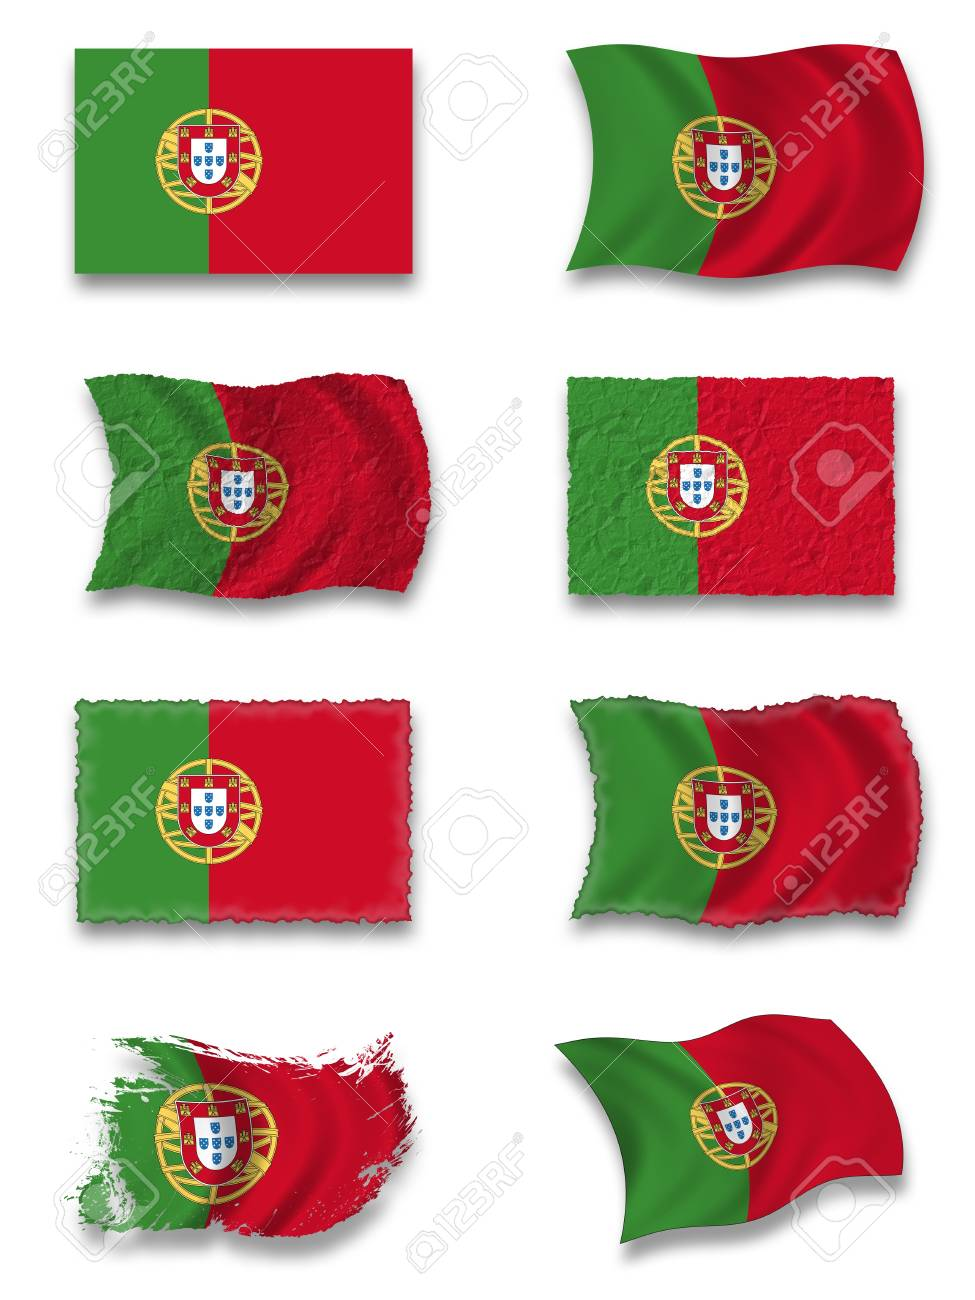 Flag of Portugal Stock Photo - 8649979